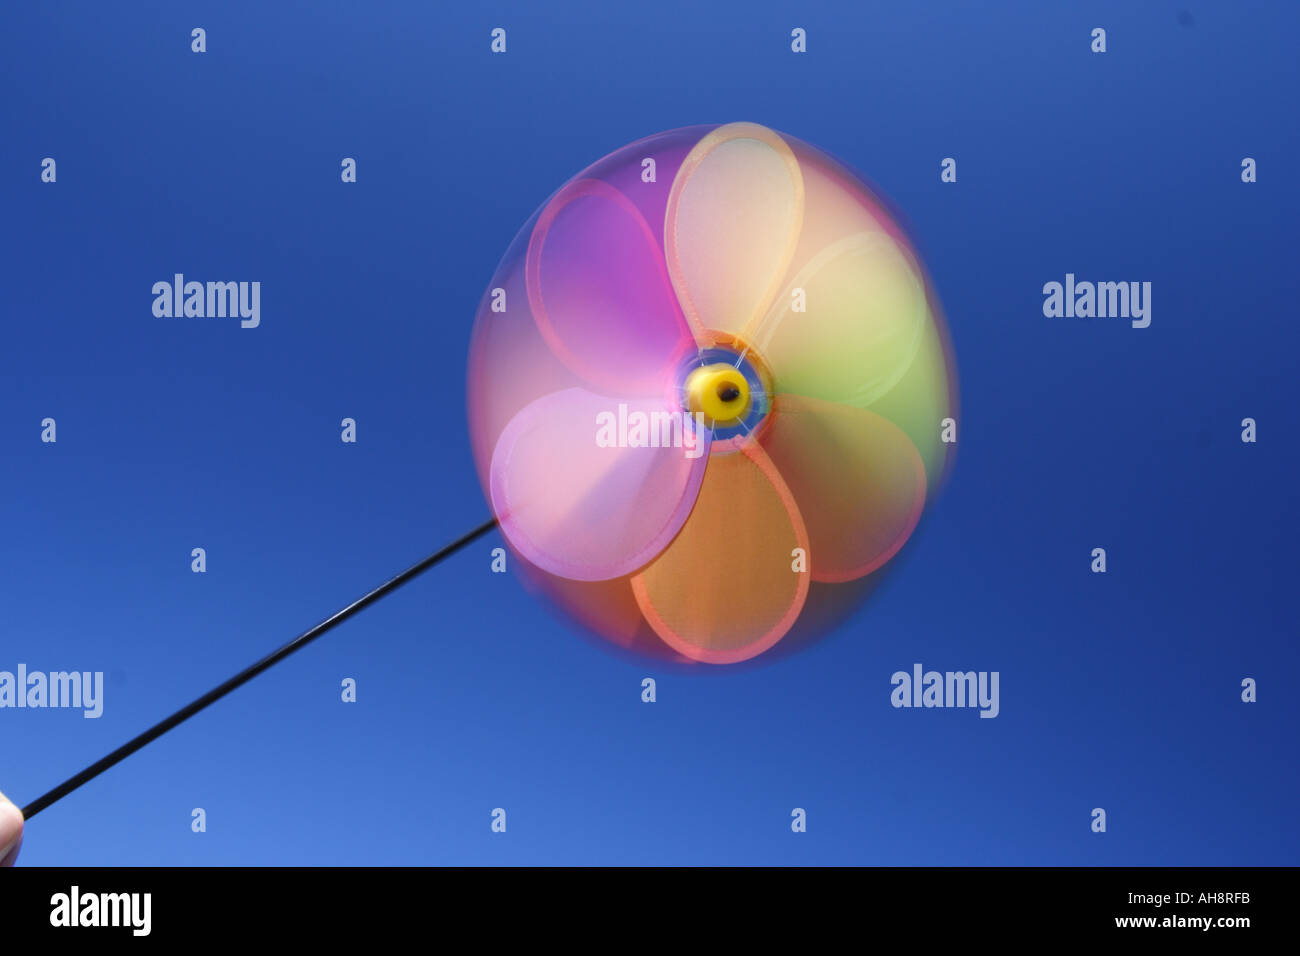 A brightly coloured pinwheel BAPD 2469 Stock Photo